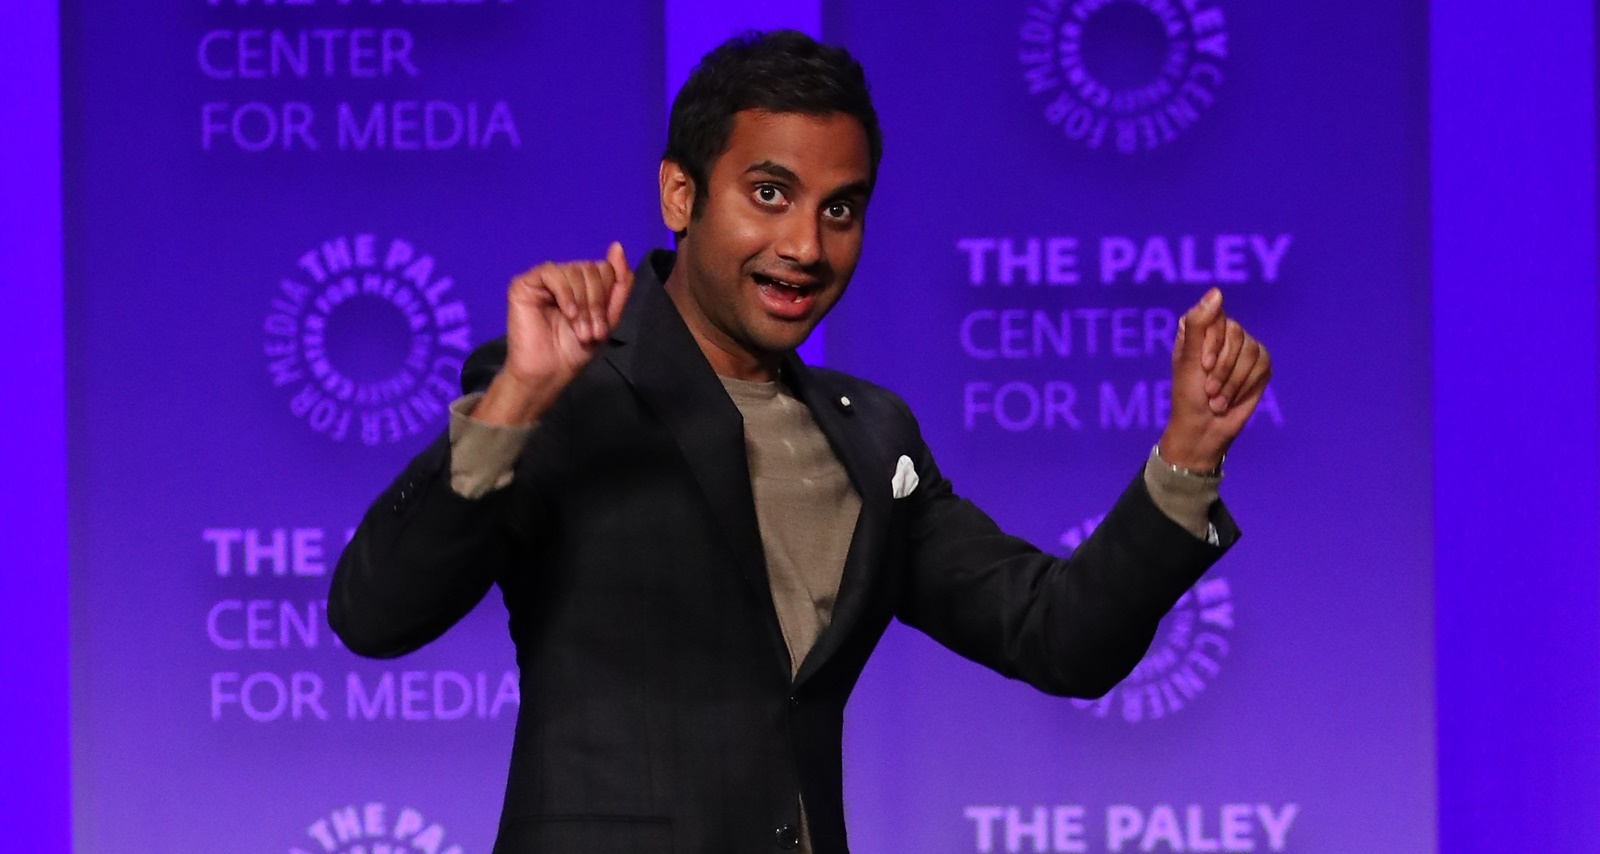 Aziz Ansari's Net Worth & Family: Facts To Know About His Parents and Brother